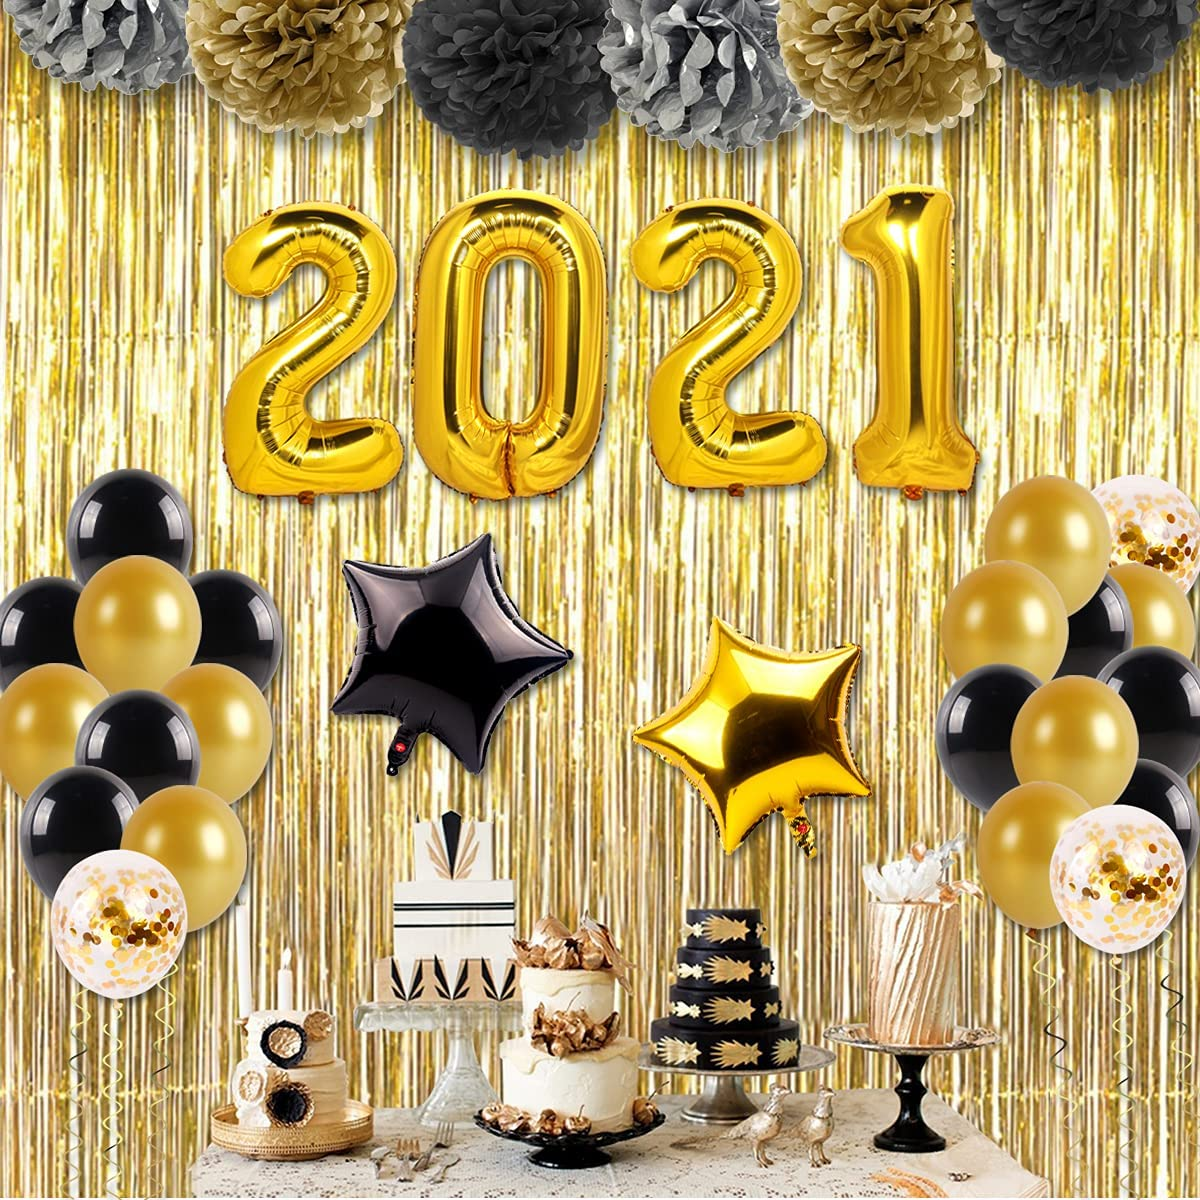 2021 Graduation Decorations Black Balloons - Included 40 Inch